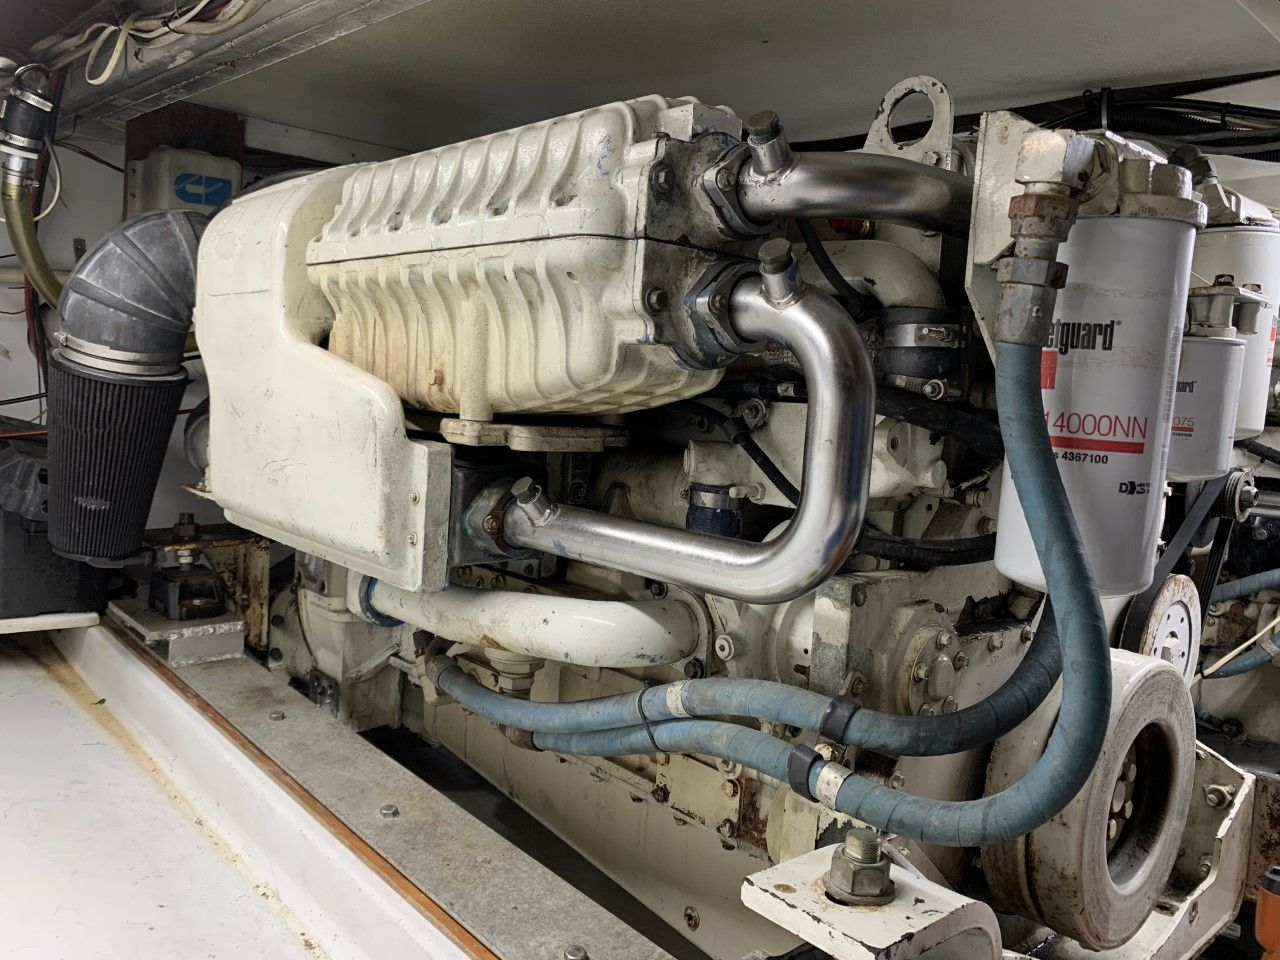 QSM11 used marine engine